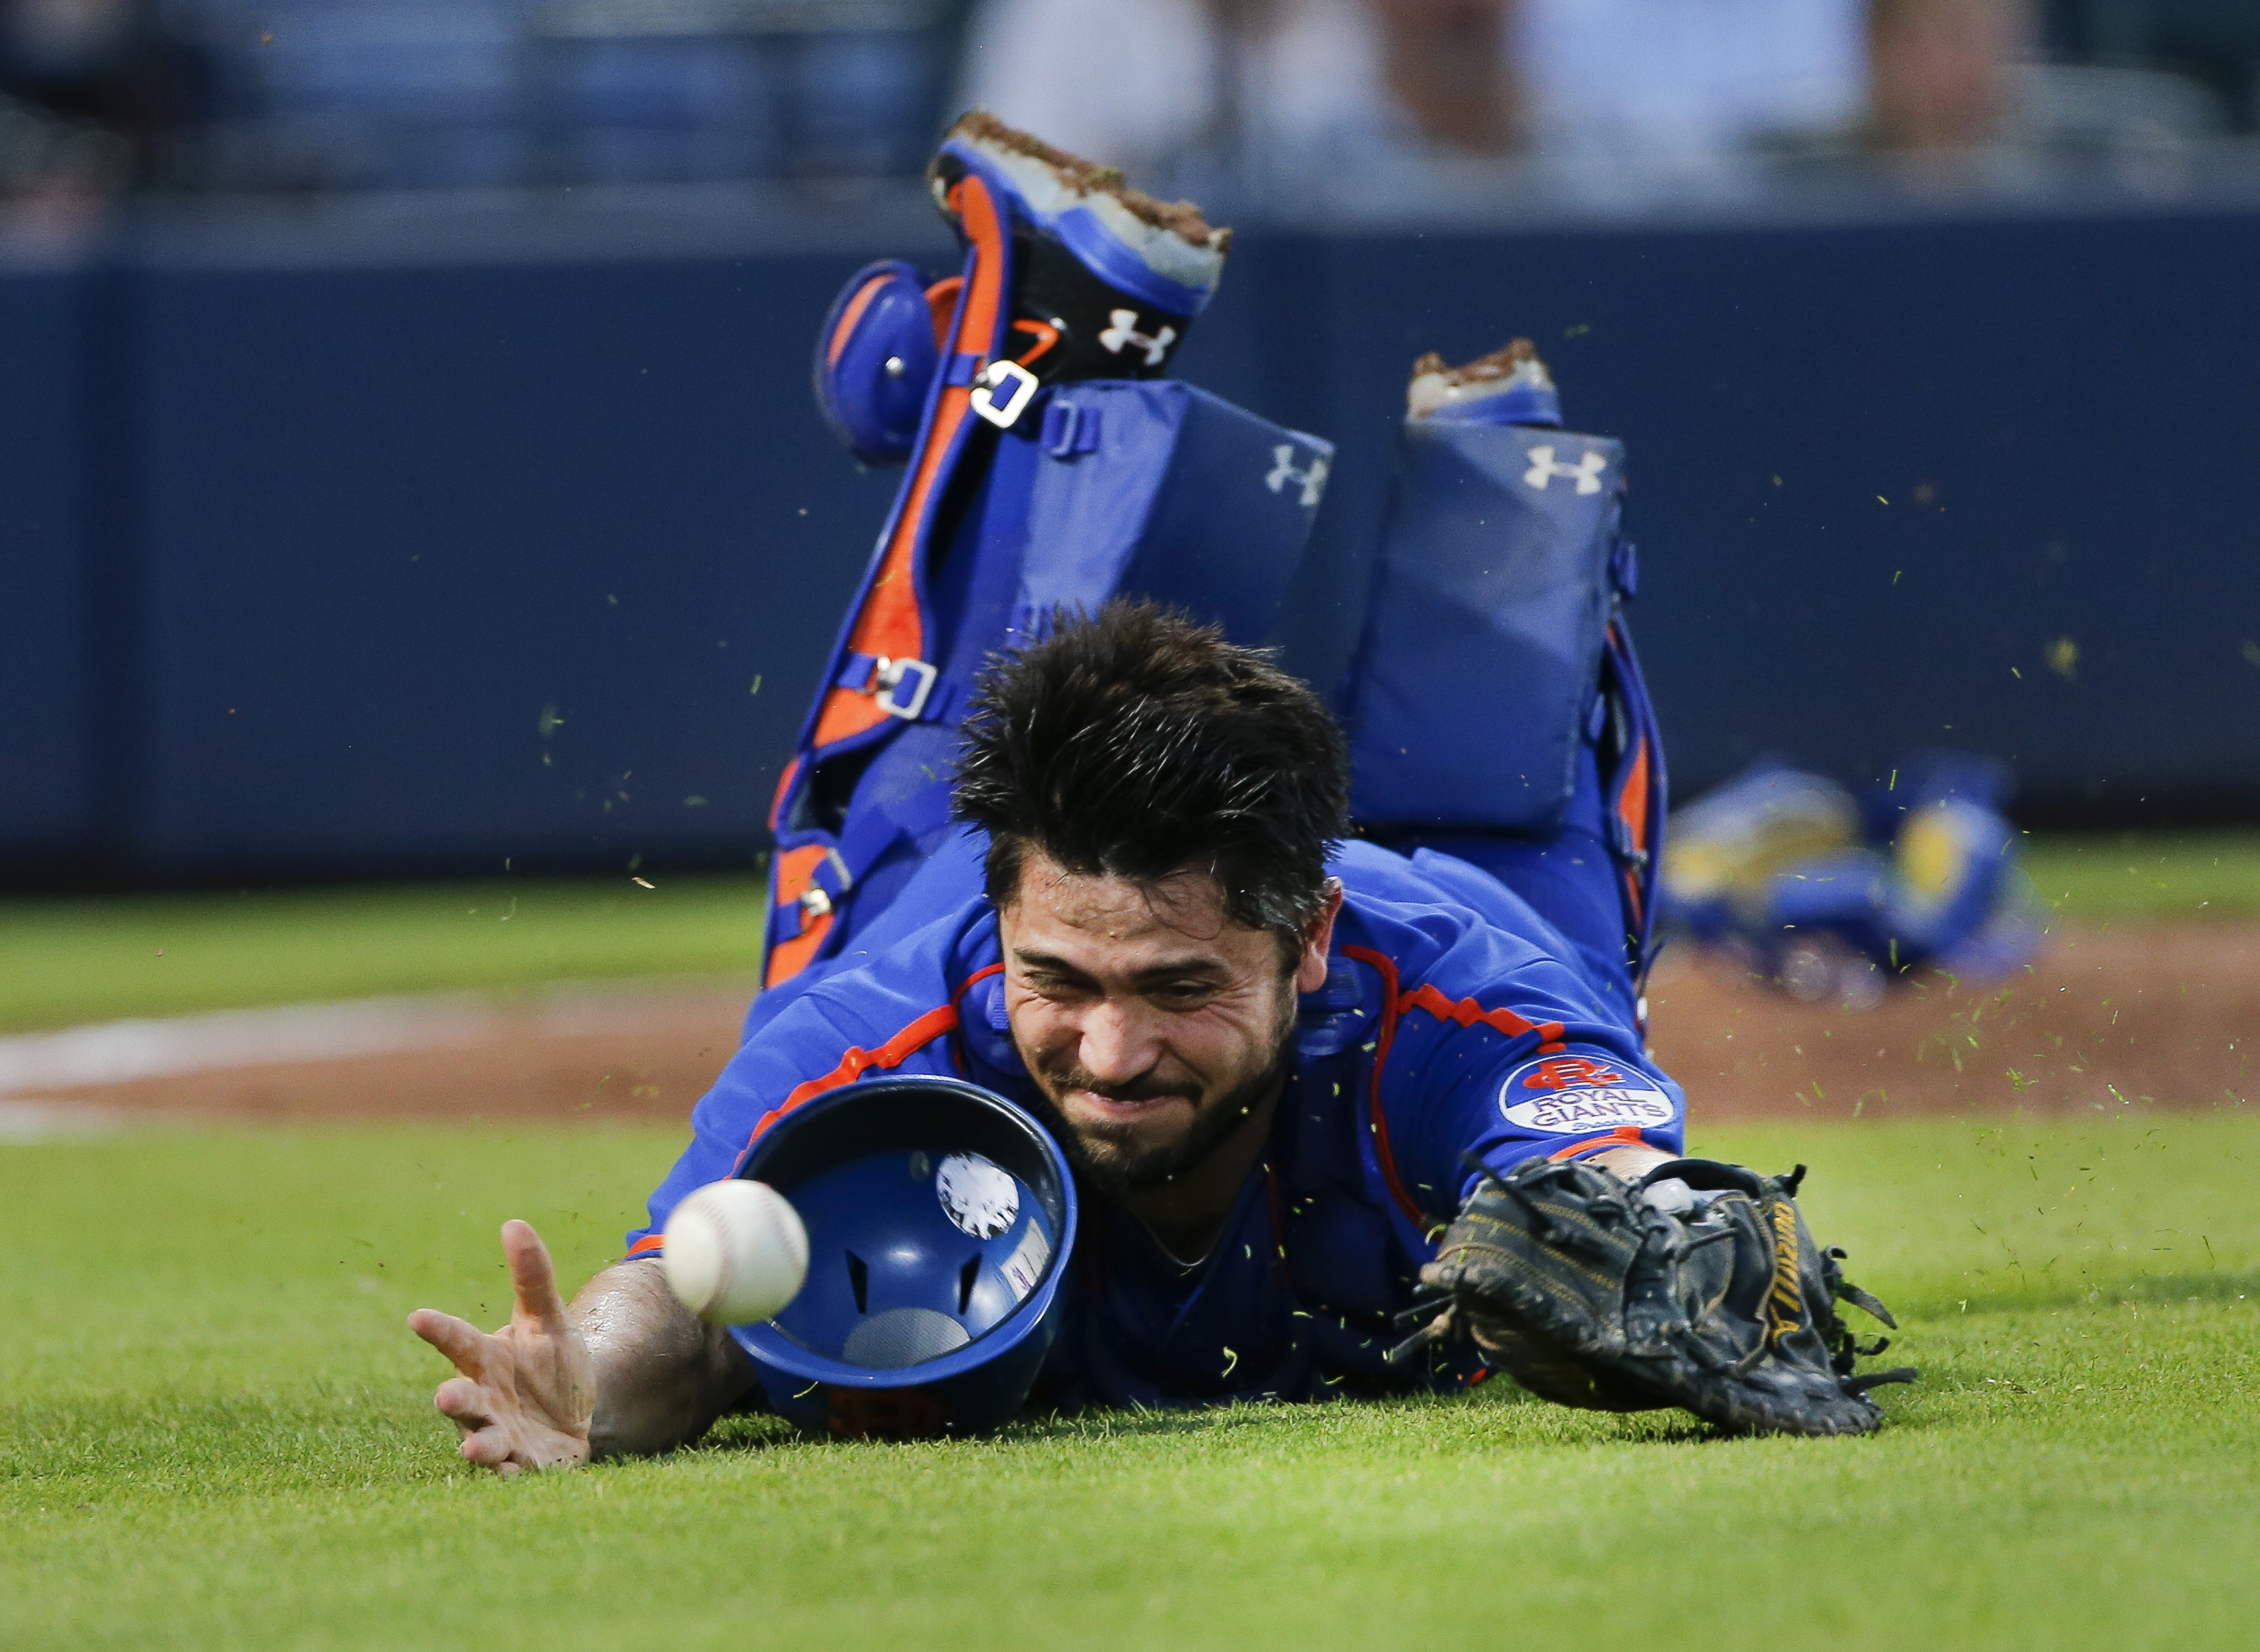 New York Mets catcher Travis d'Arnaud (7) can't reach a ball bunted foul by Atlanta Braves pitcher Williams Perez in the fourth inning of a baseball game Saturday, June 20, 2015, in Atlanta.  (AP Photo/John Bazemore)